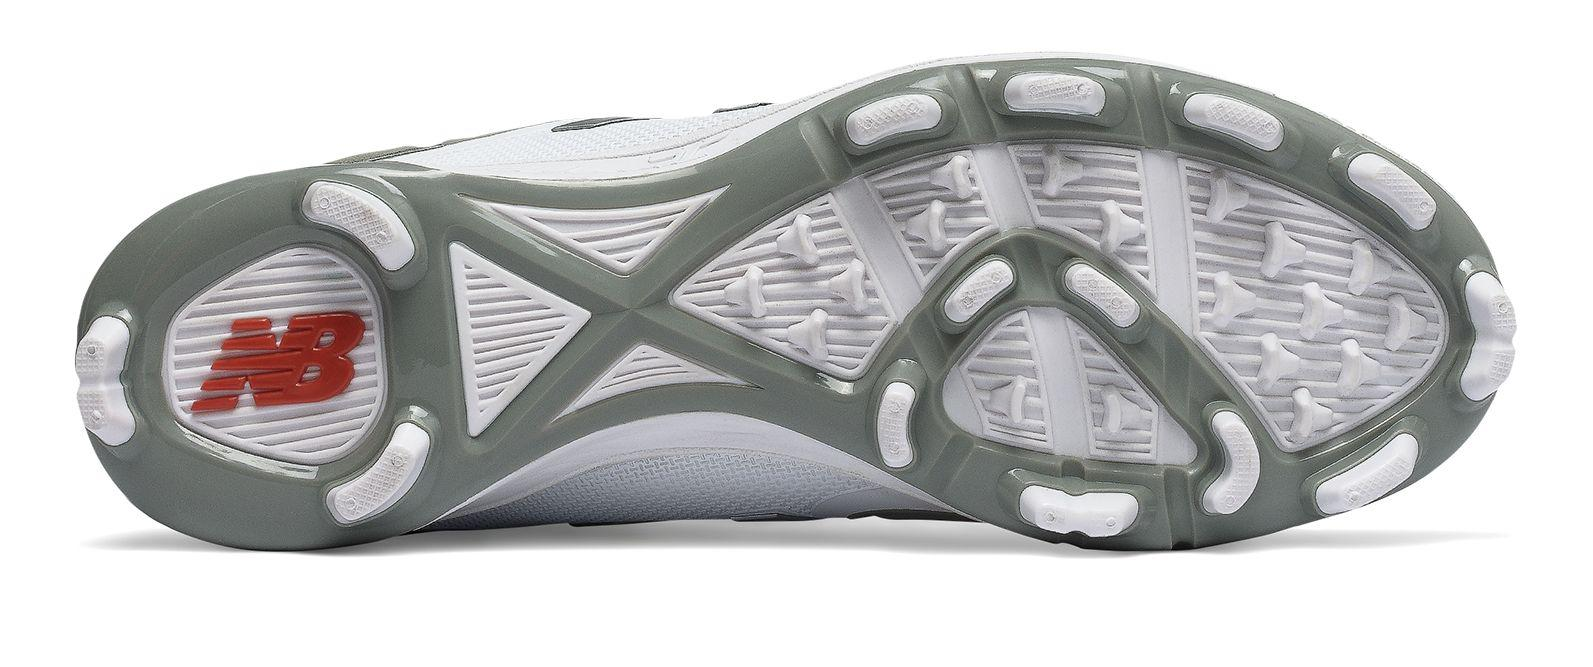 de0bcaf47 New Balance Mid-cut 3000v3 Tpu Molded Cleat in Gray for Men - Lyst